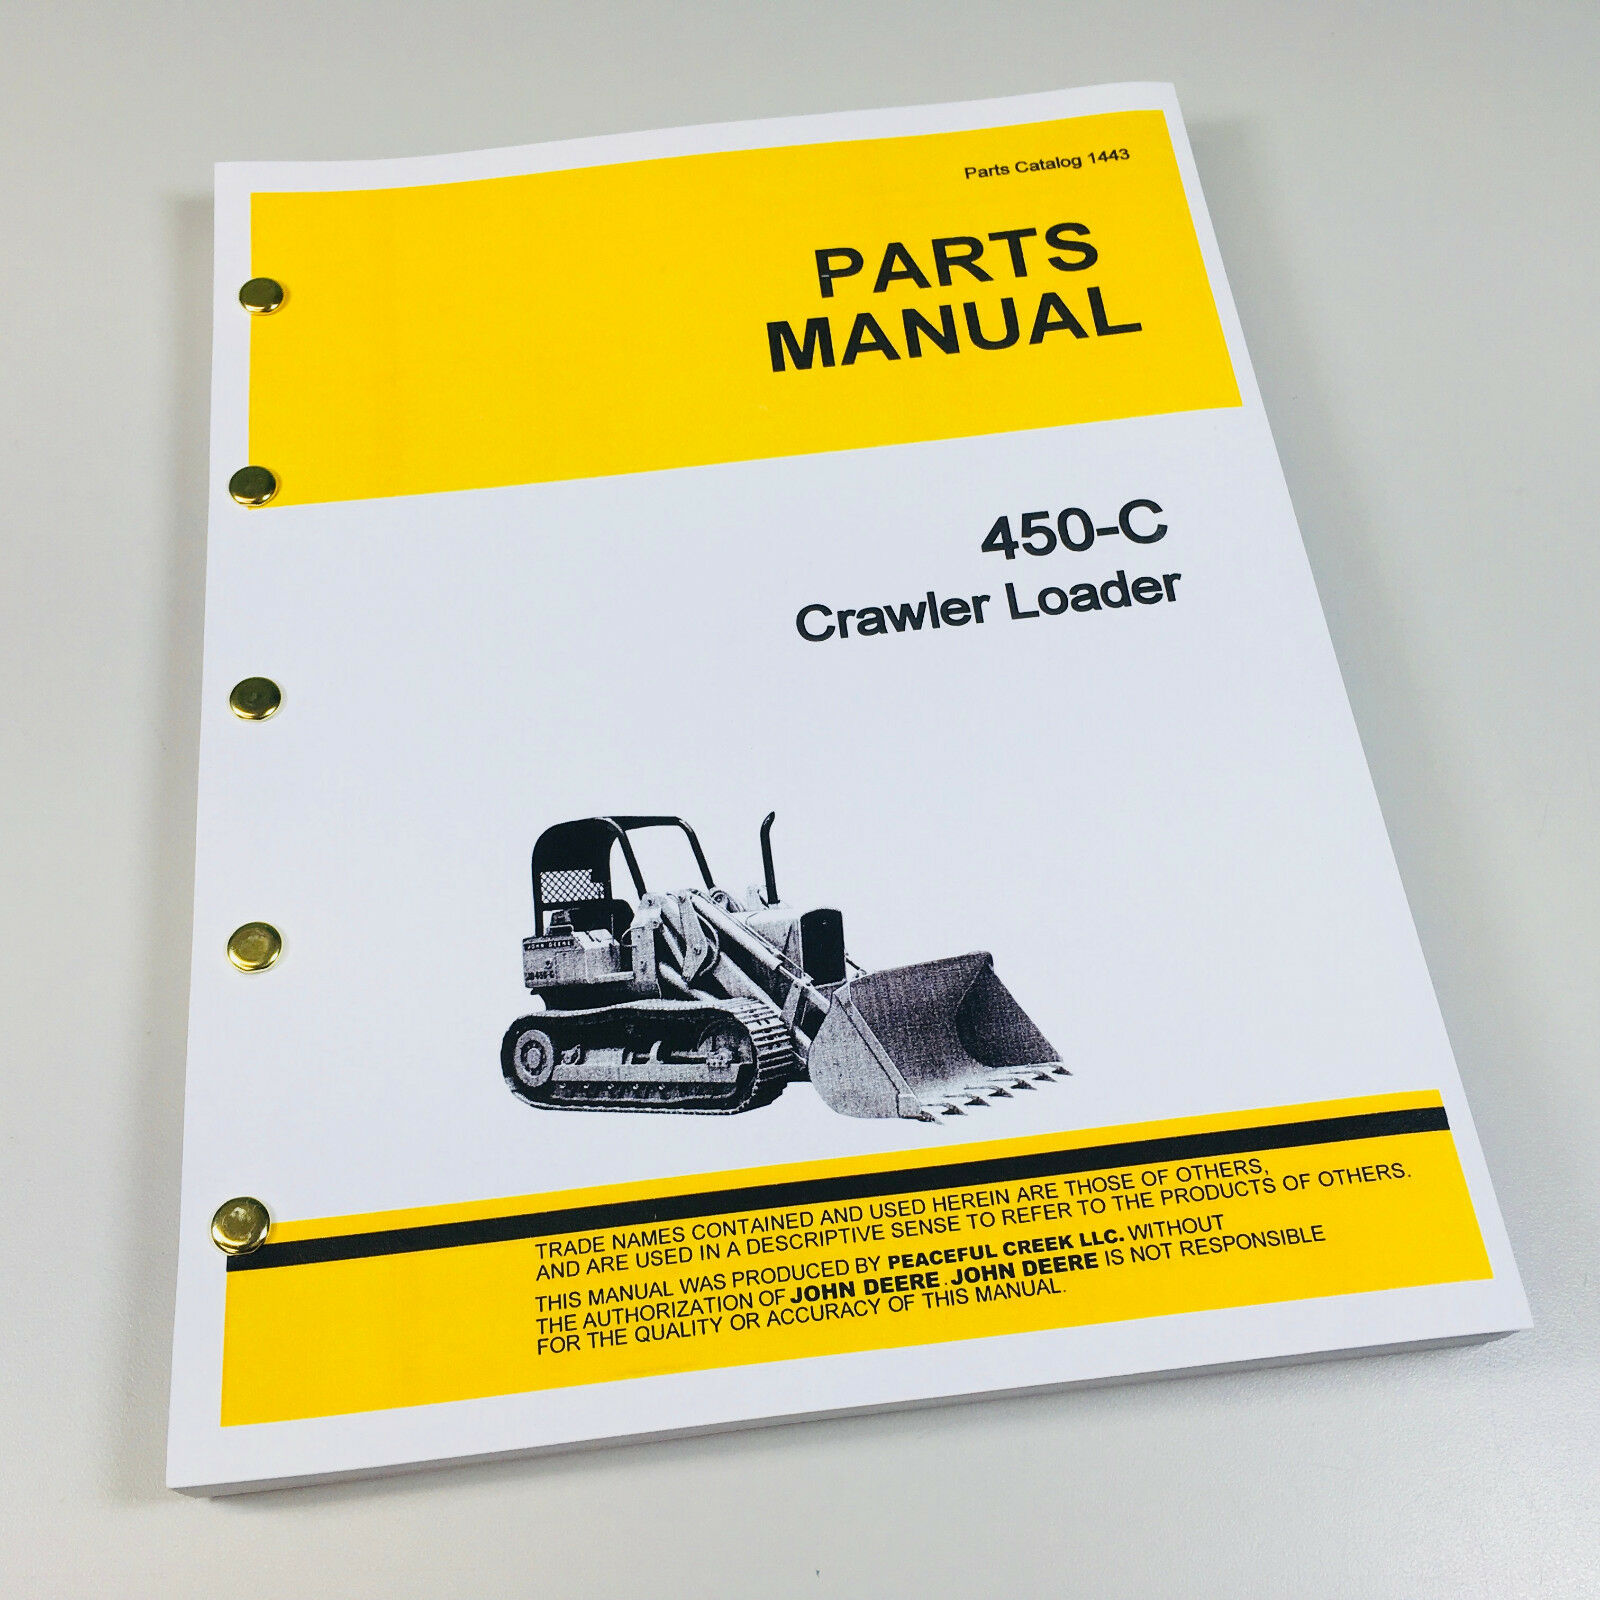 Parts Manual For John Deere 450C Crawler Loader Catalog Tractor Jd450-C 1  of 5FREE Shipping ...